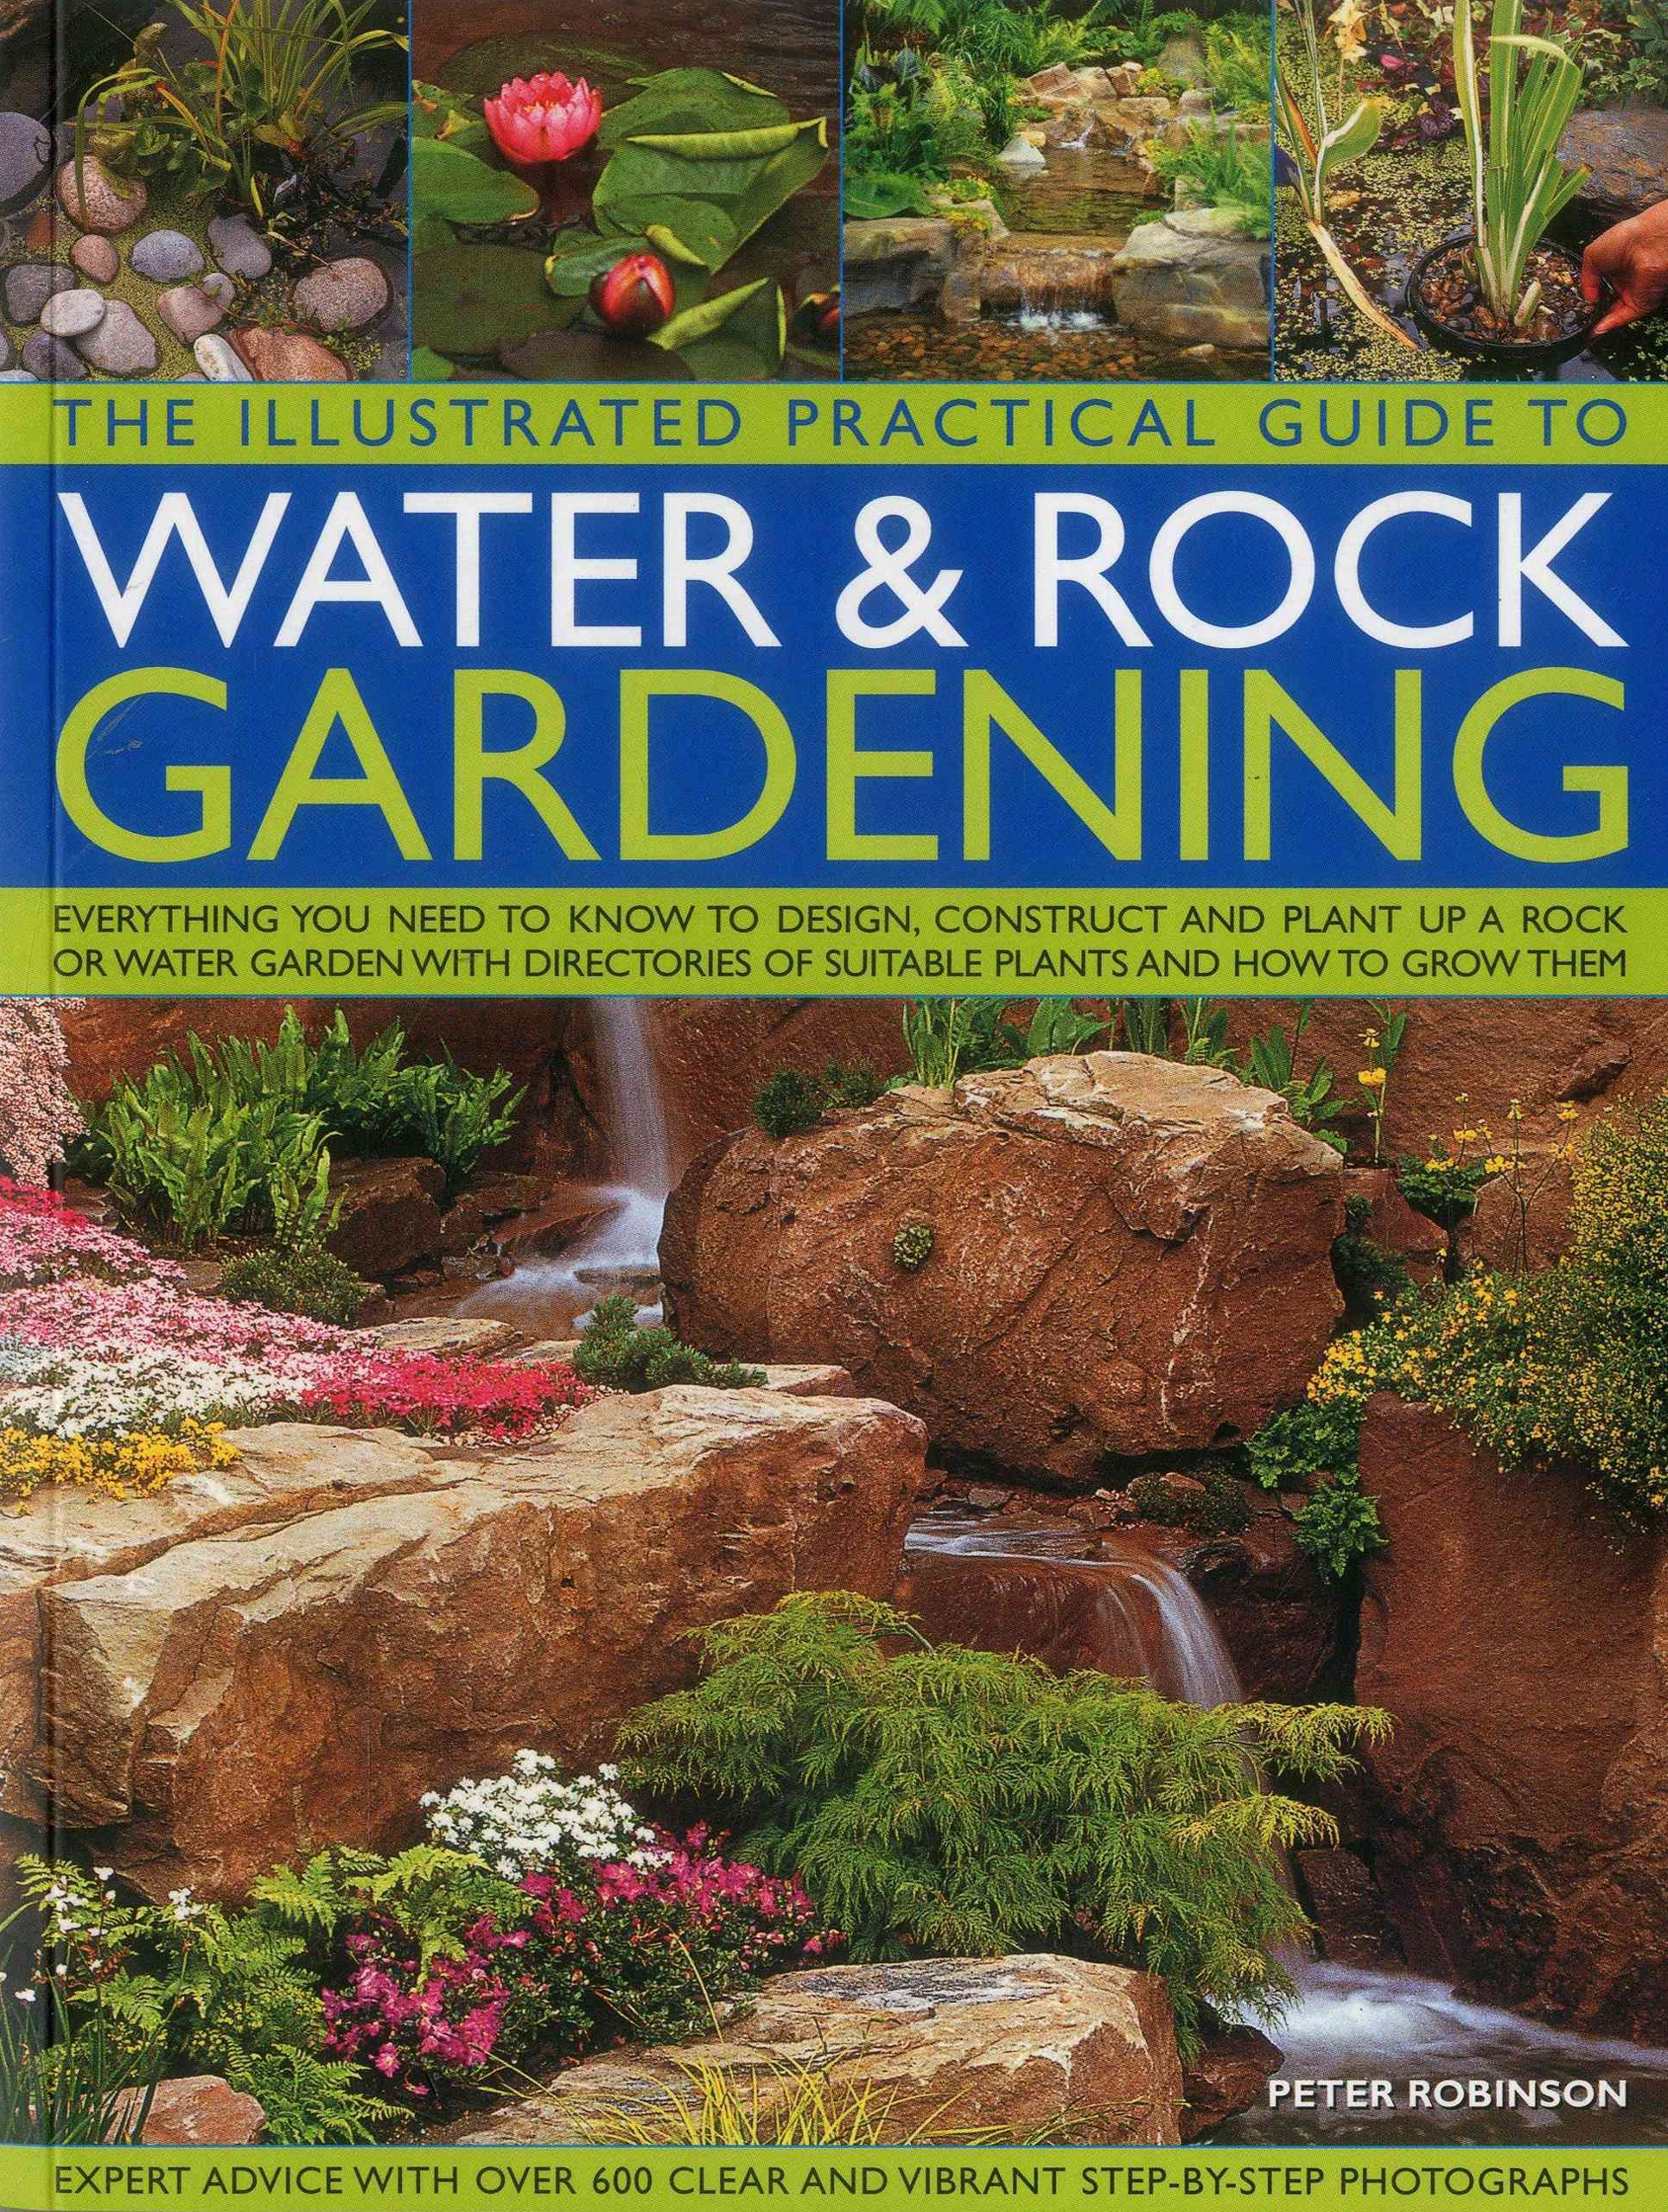 The Illustrated Practical Guide to Water and Rock Gardening